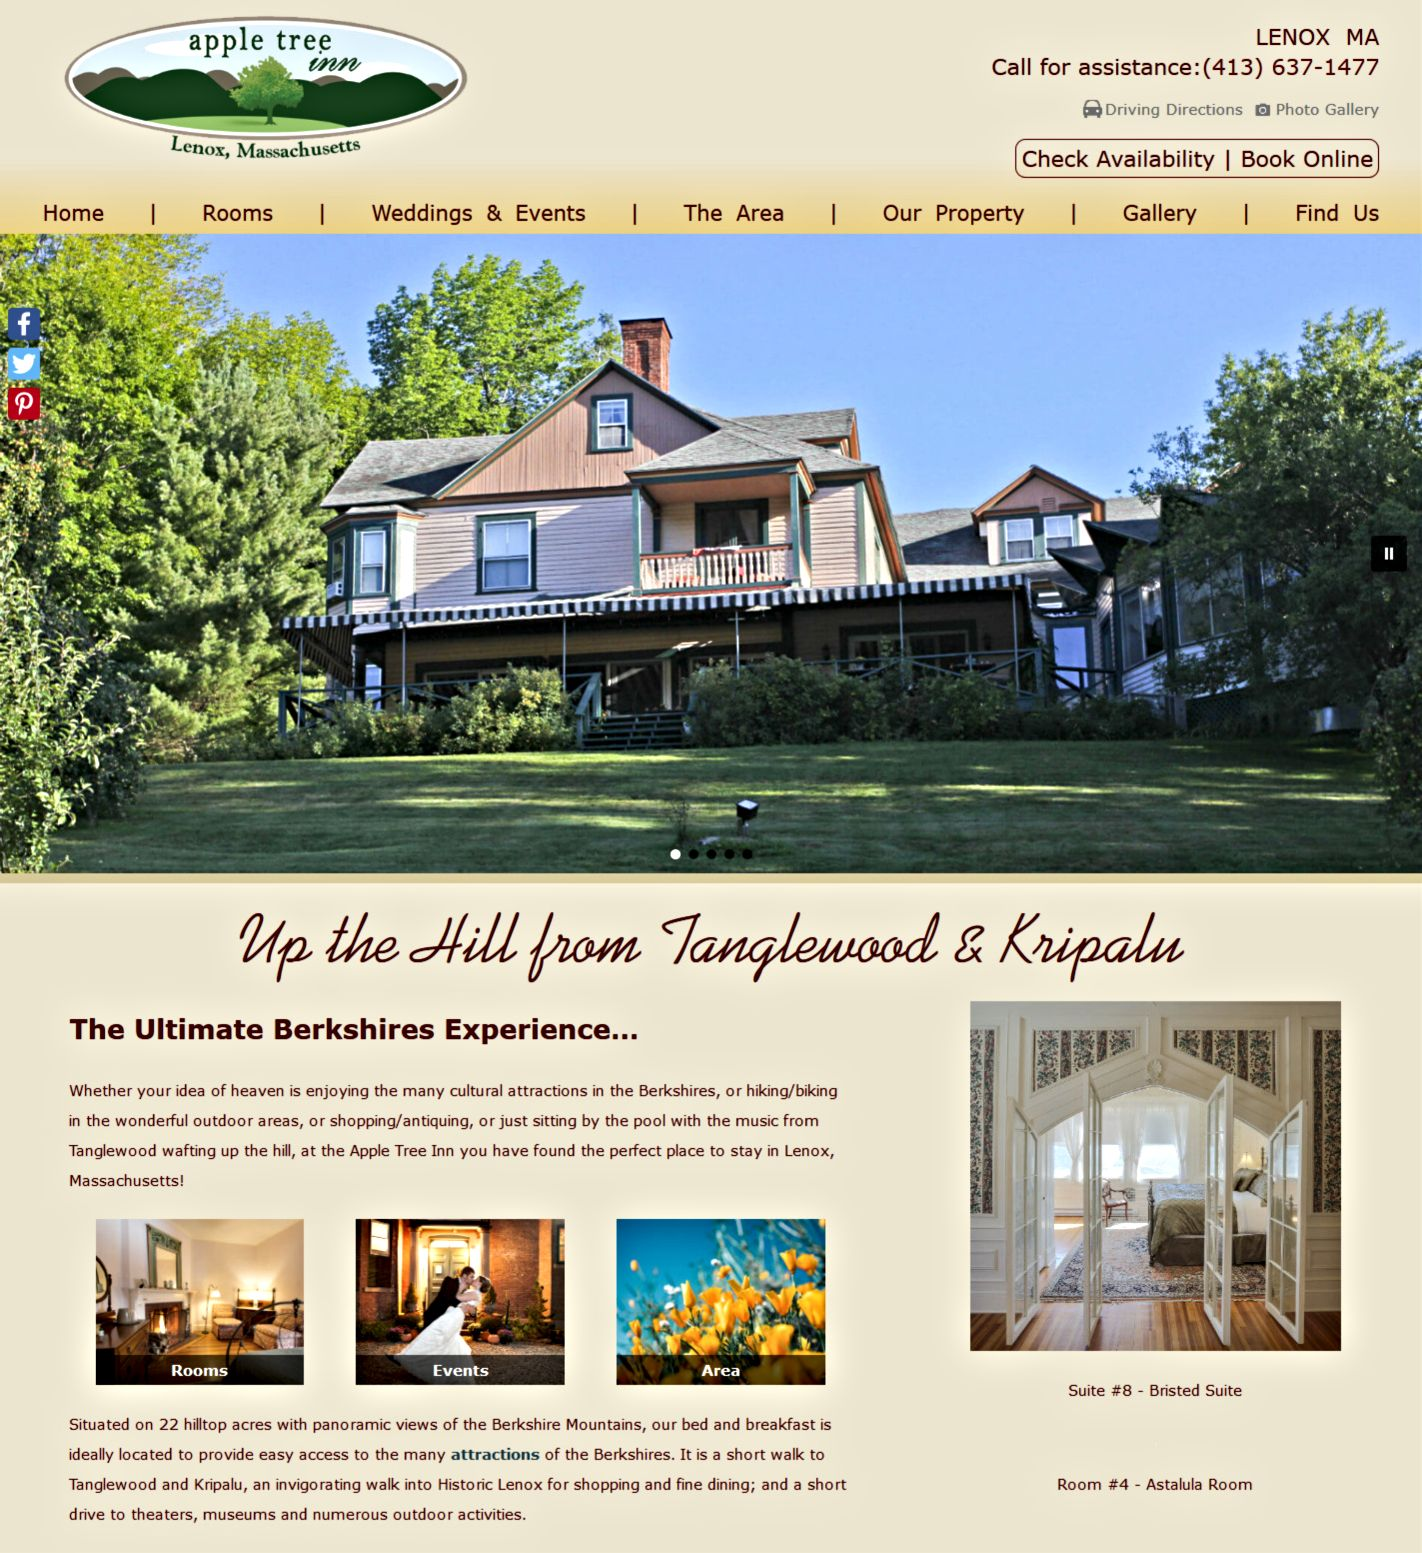 Apple Tree Inn's website home page